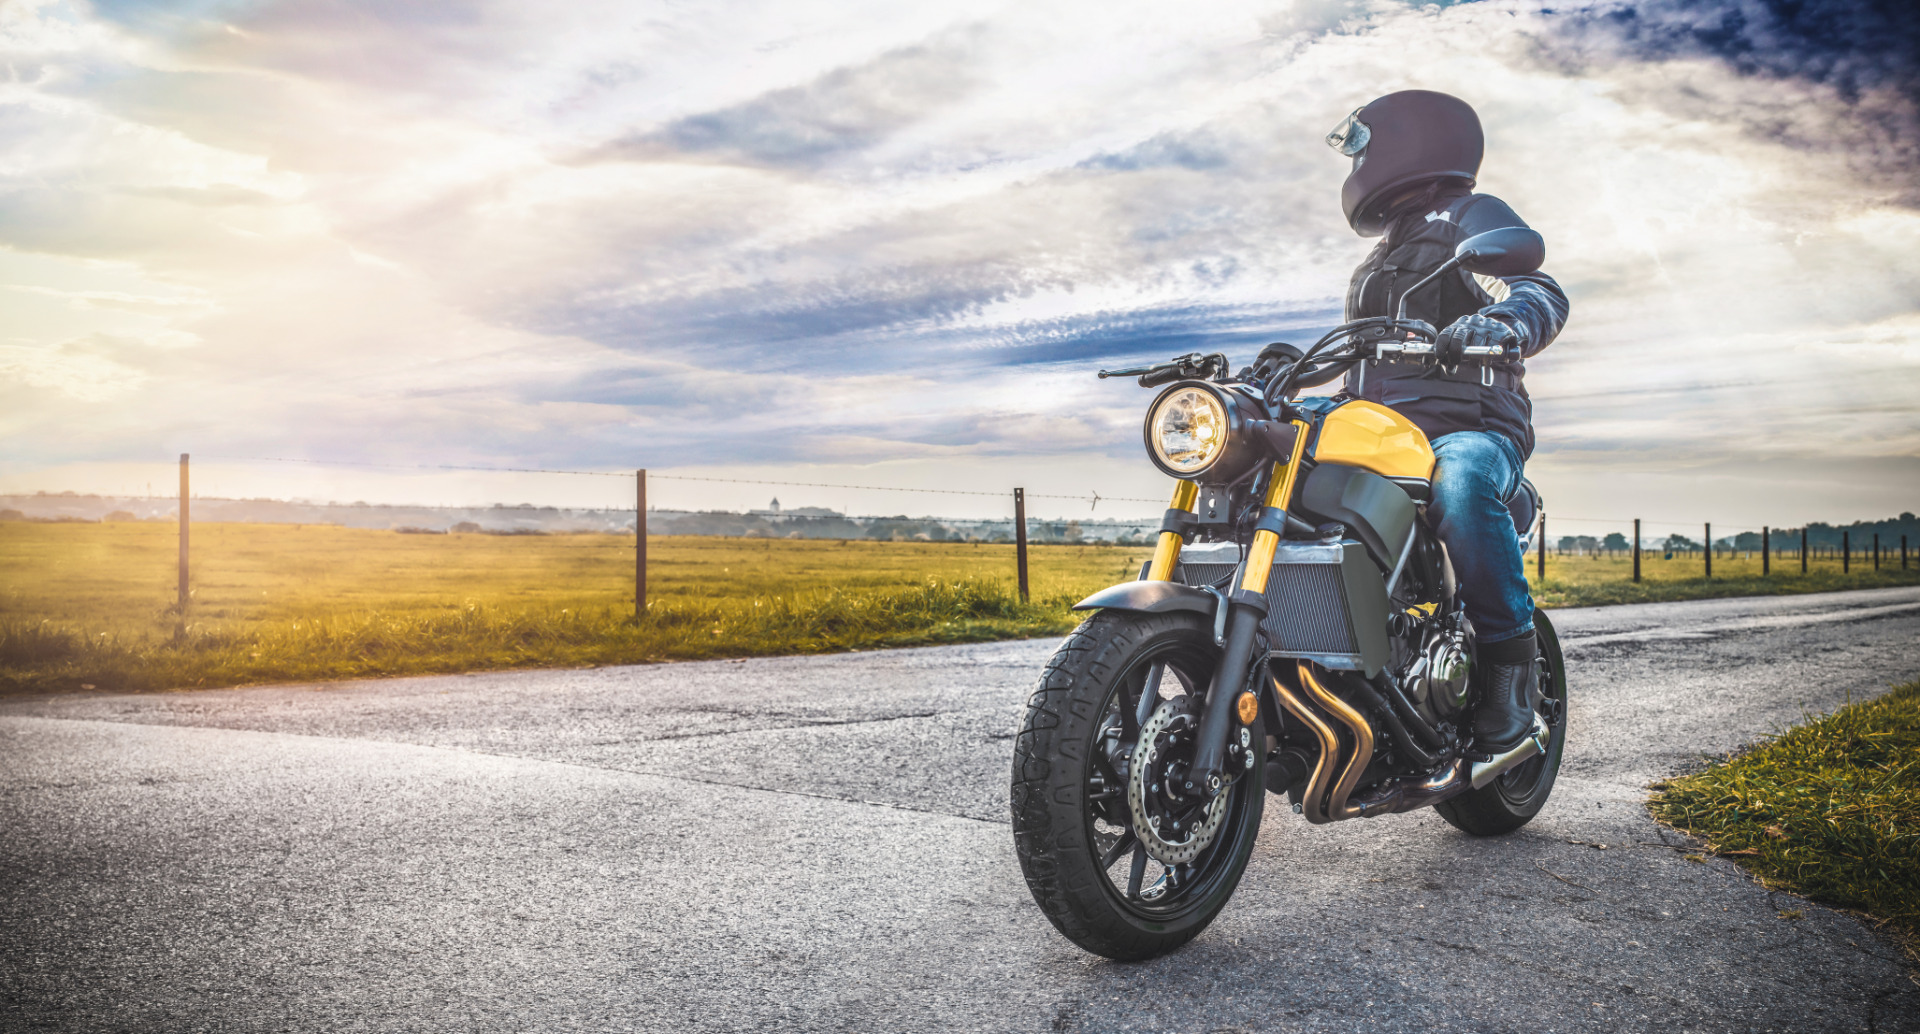 how to choose motorcycle batteries that are long-lasting